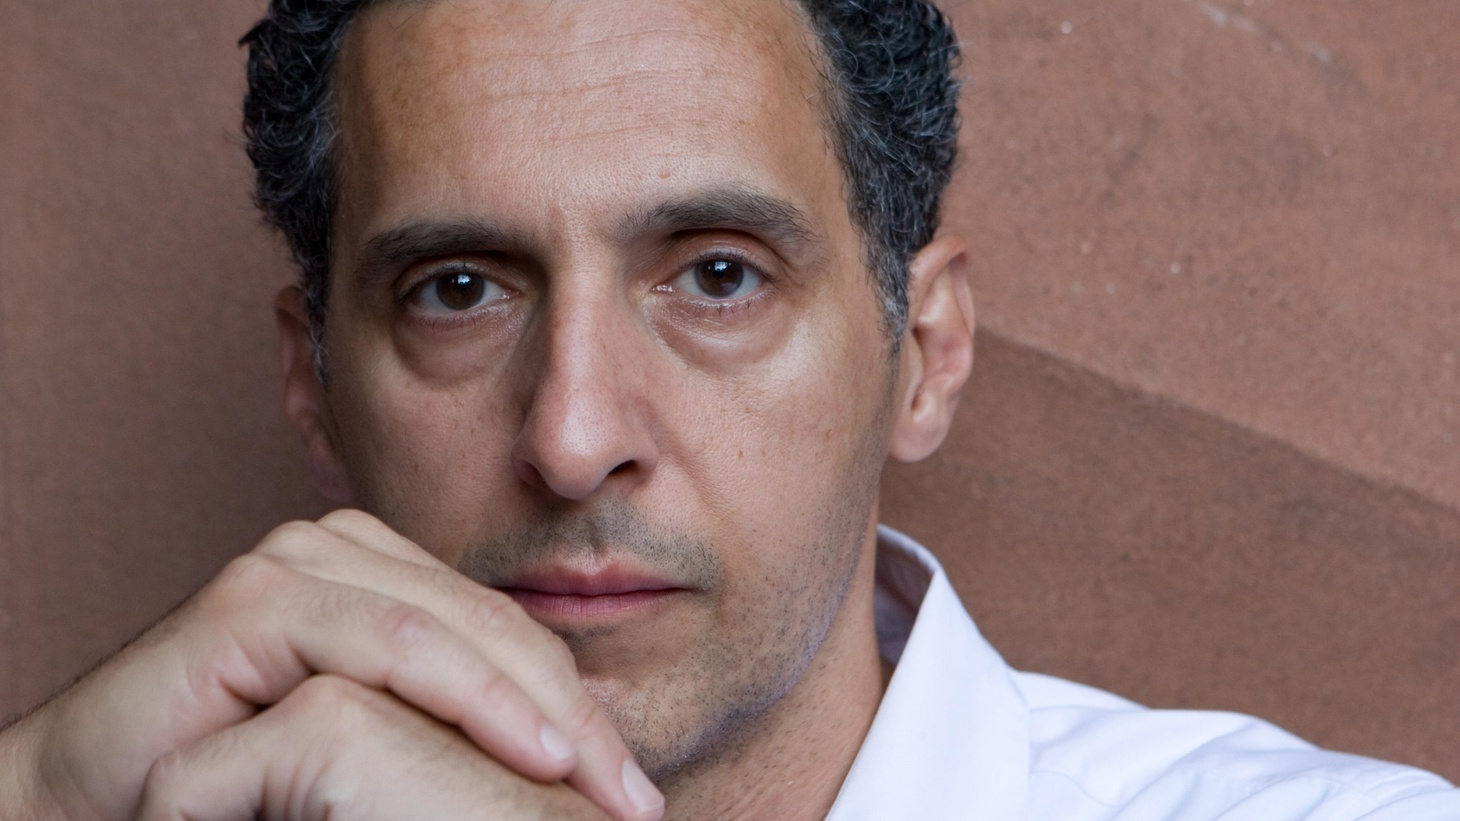 Opera, movie theme music and Sinatra all make an appearance in acclaimed actor John Turturro's Guest DJ set.